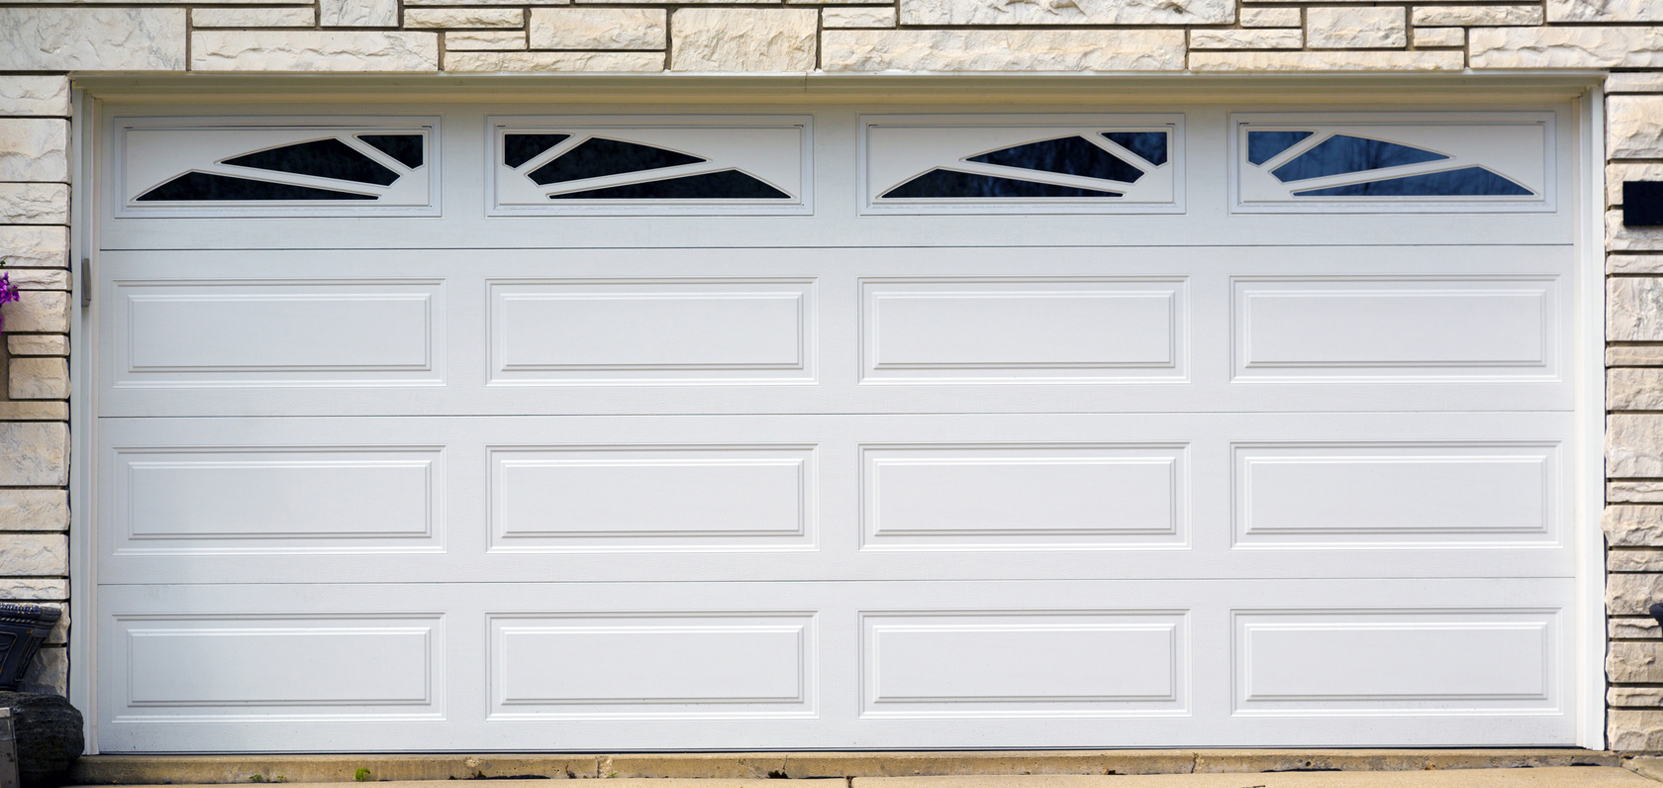 crystal-city-garage-door-repair-alexandria-va-banner-2